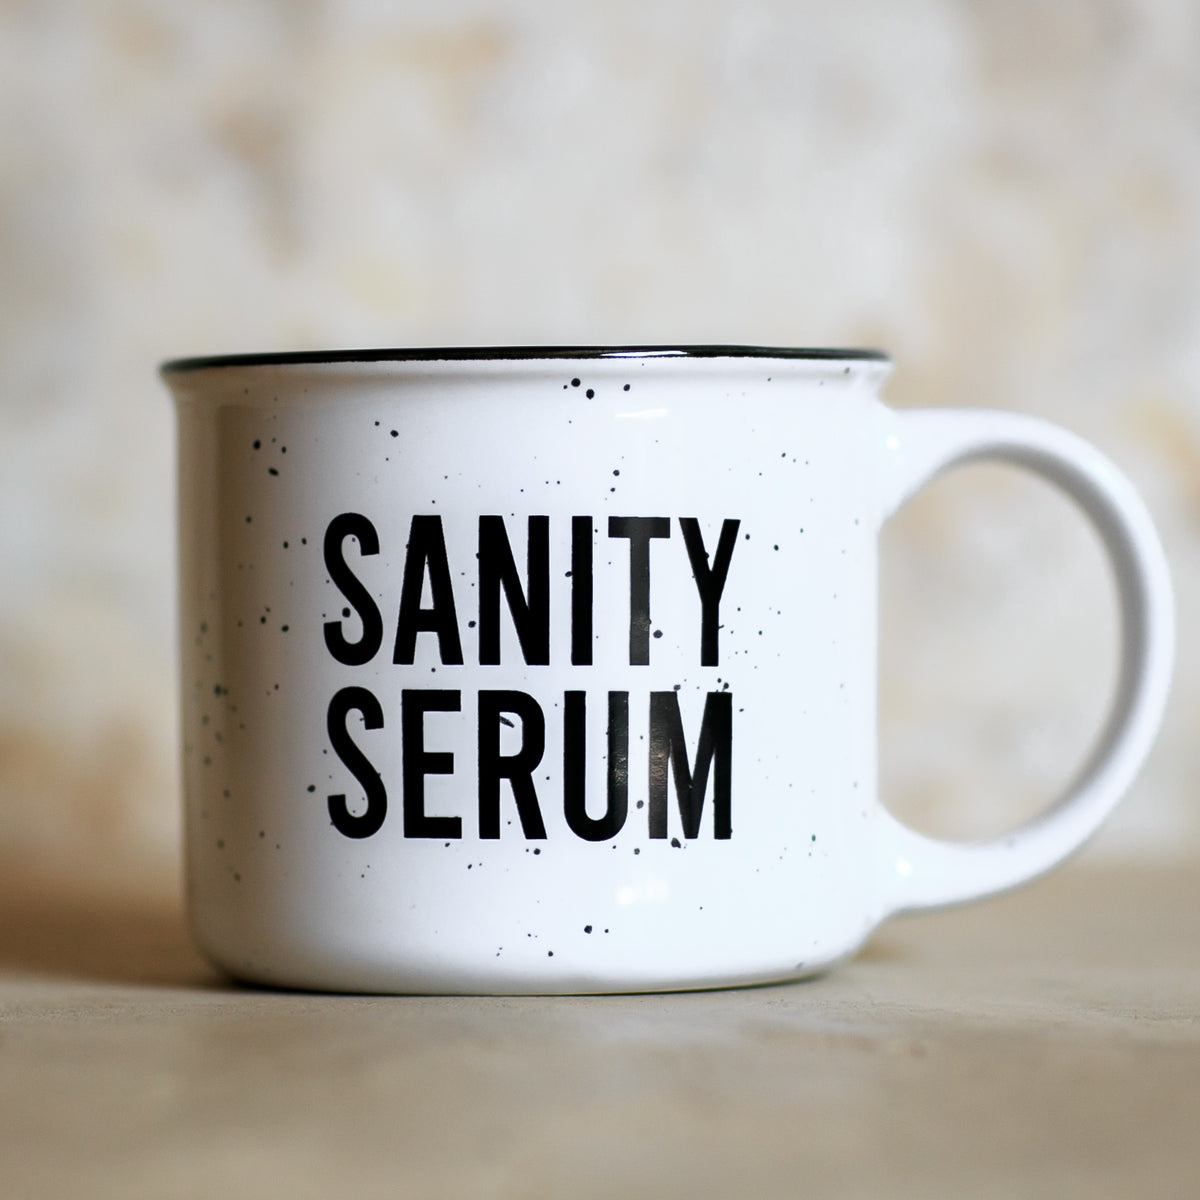 BAD MAMAS SANITY SERUM COFFEE MUG